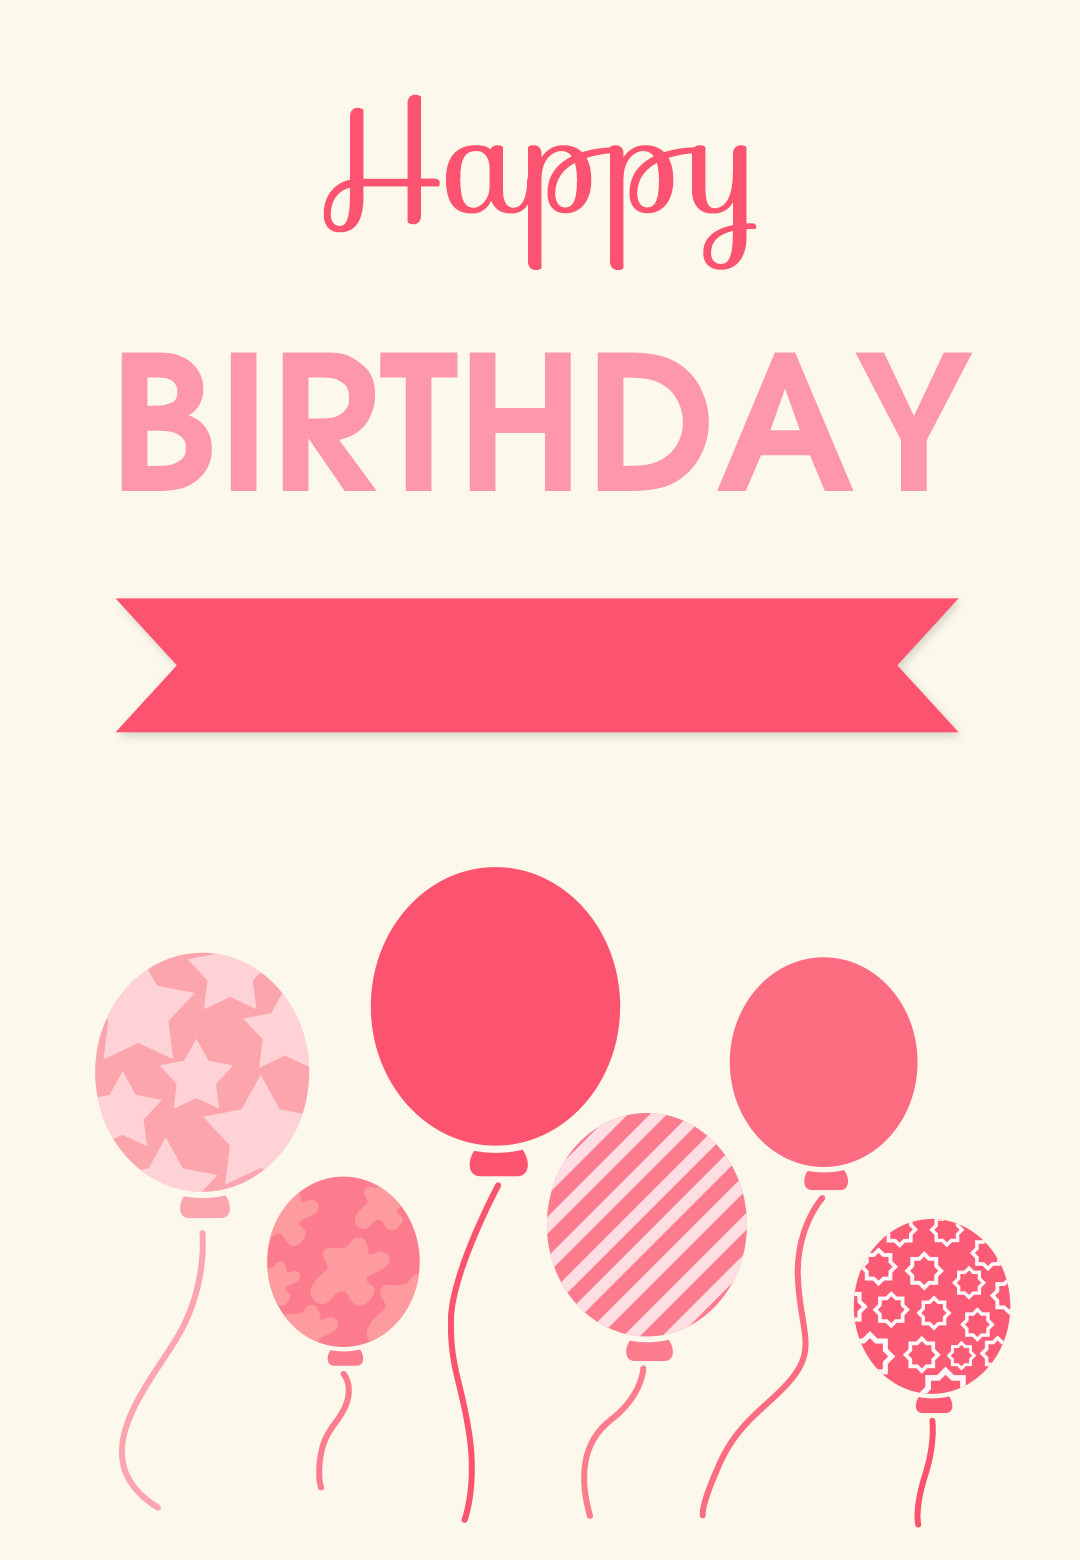 Best ideas about Printout Birthday Card . Save or Pin Birthday Greetings Birthday Card Free Now.